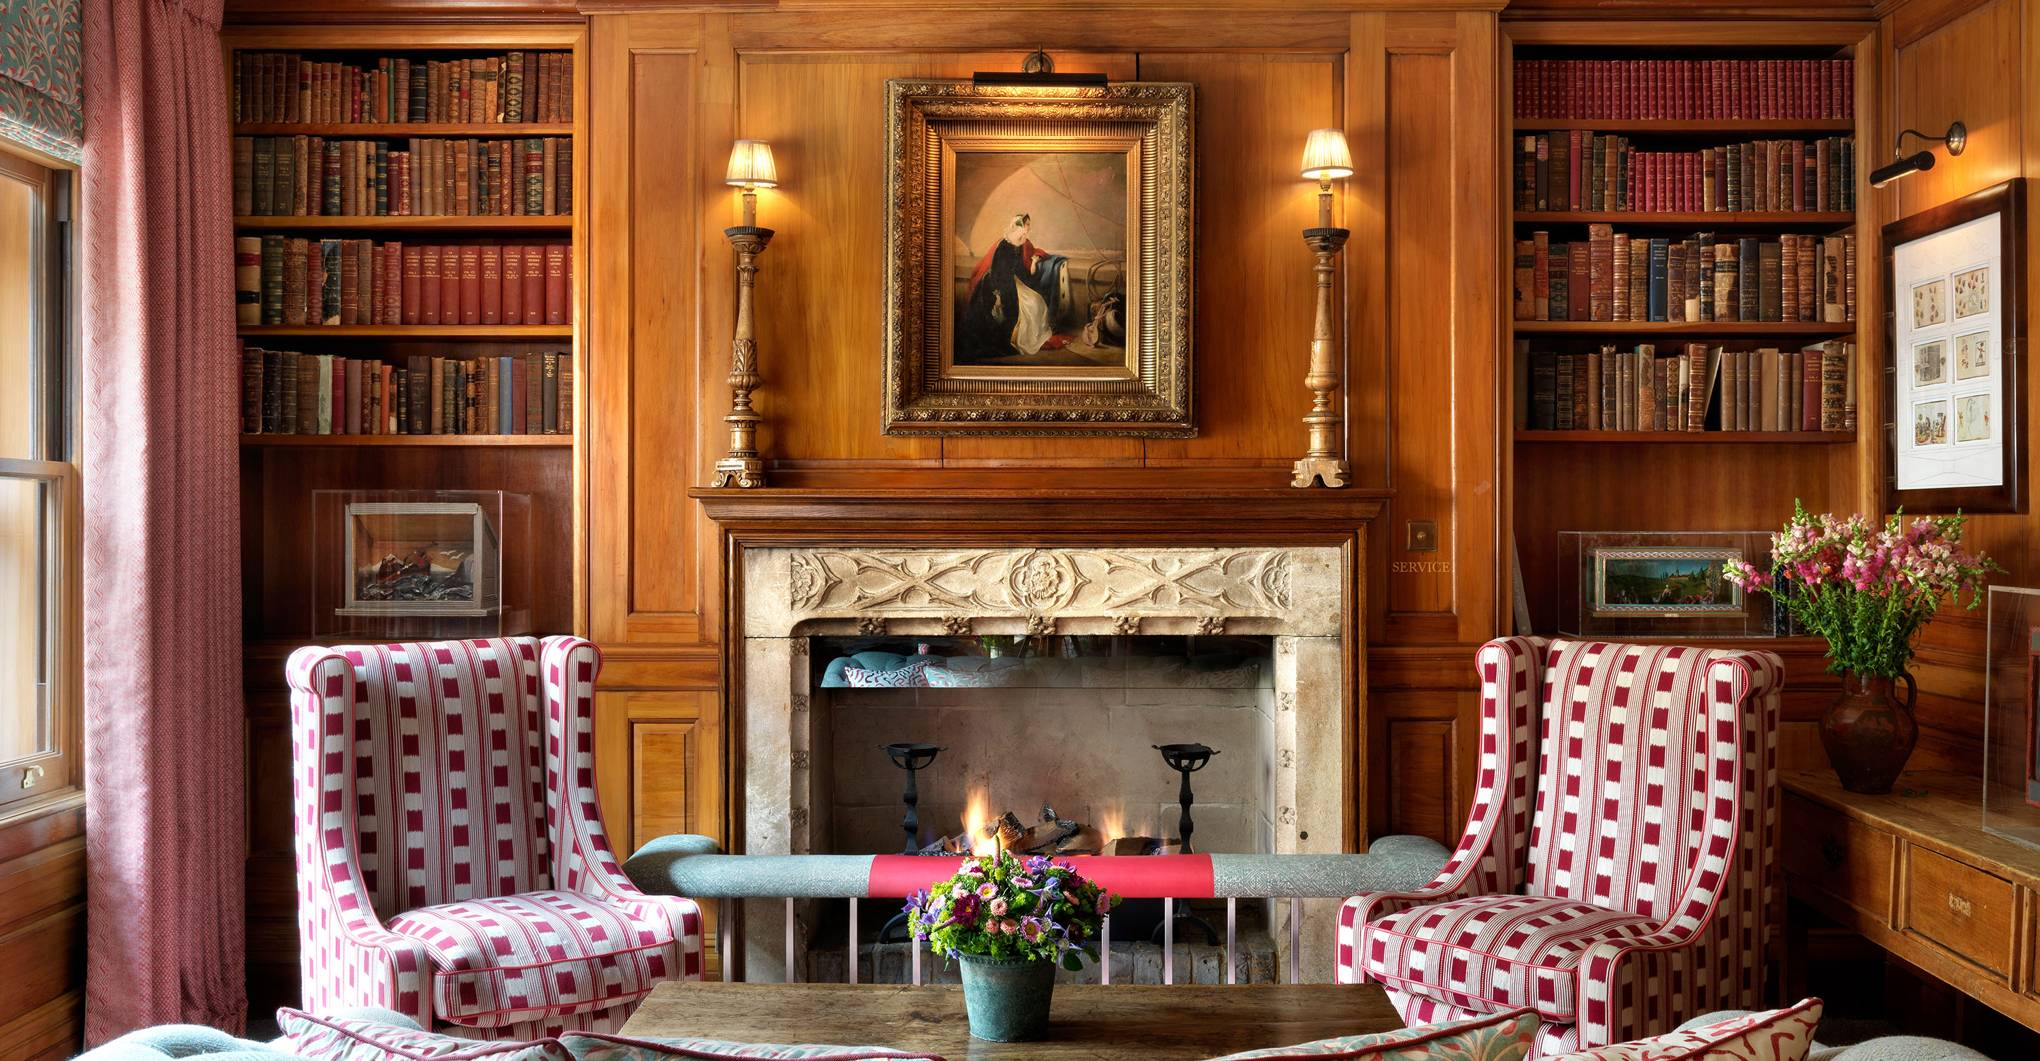 Covent Garden Hotel review